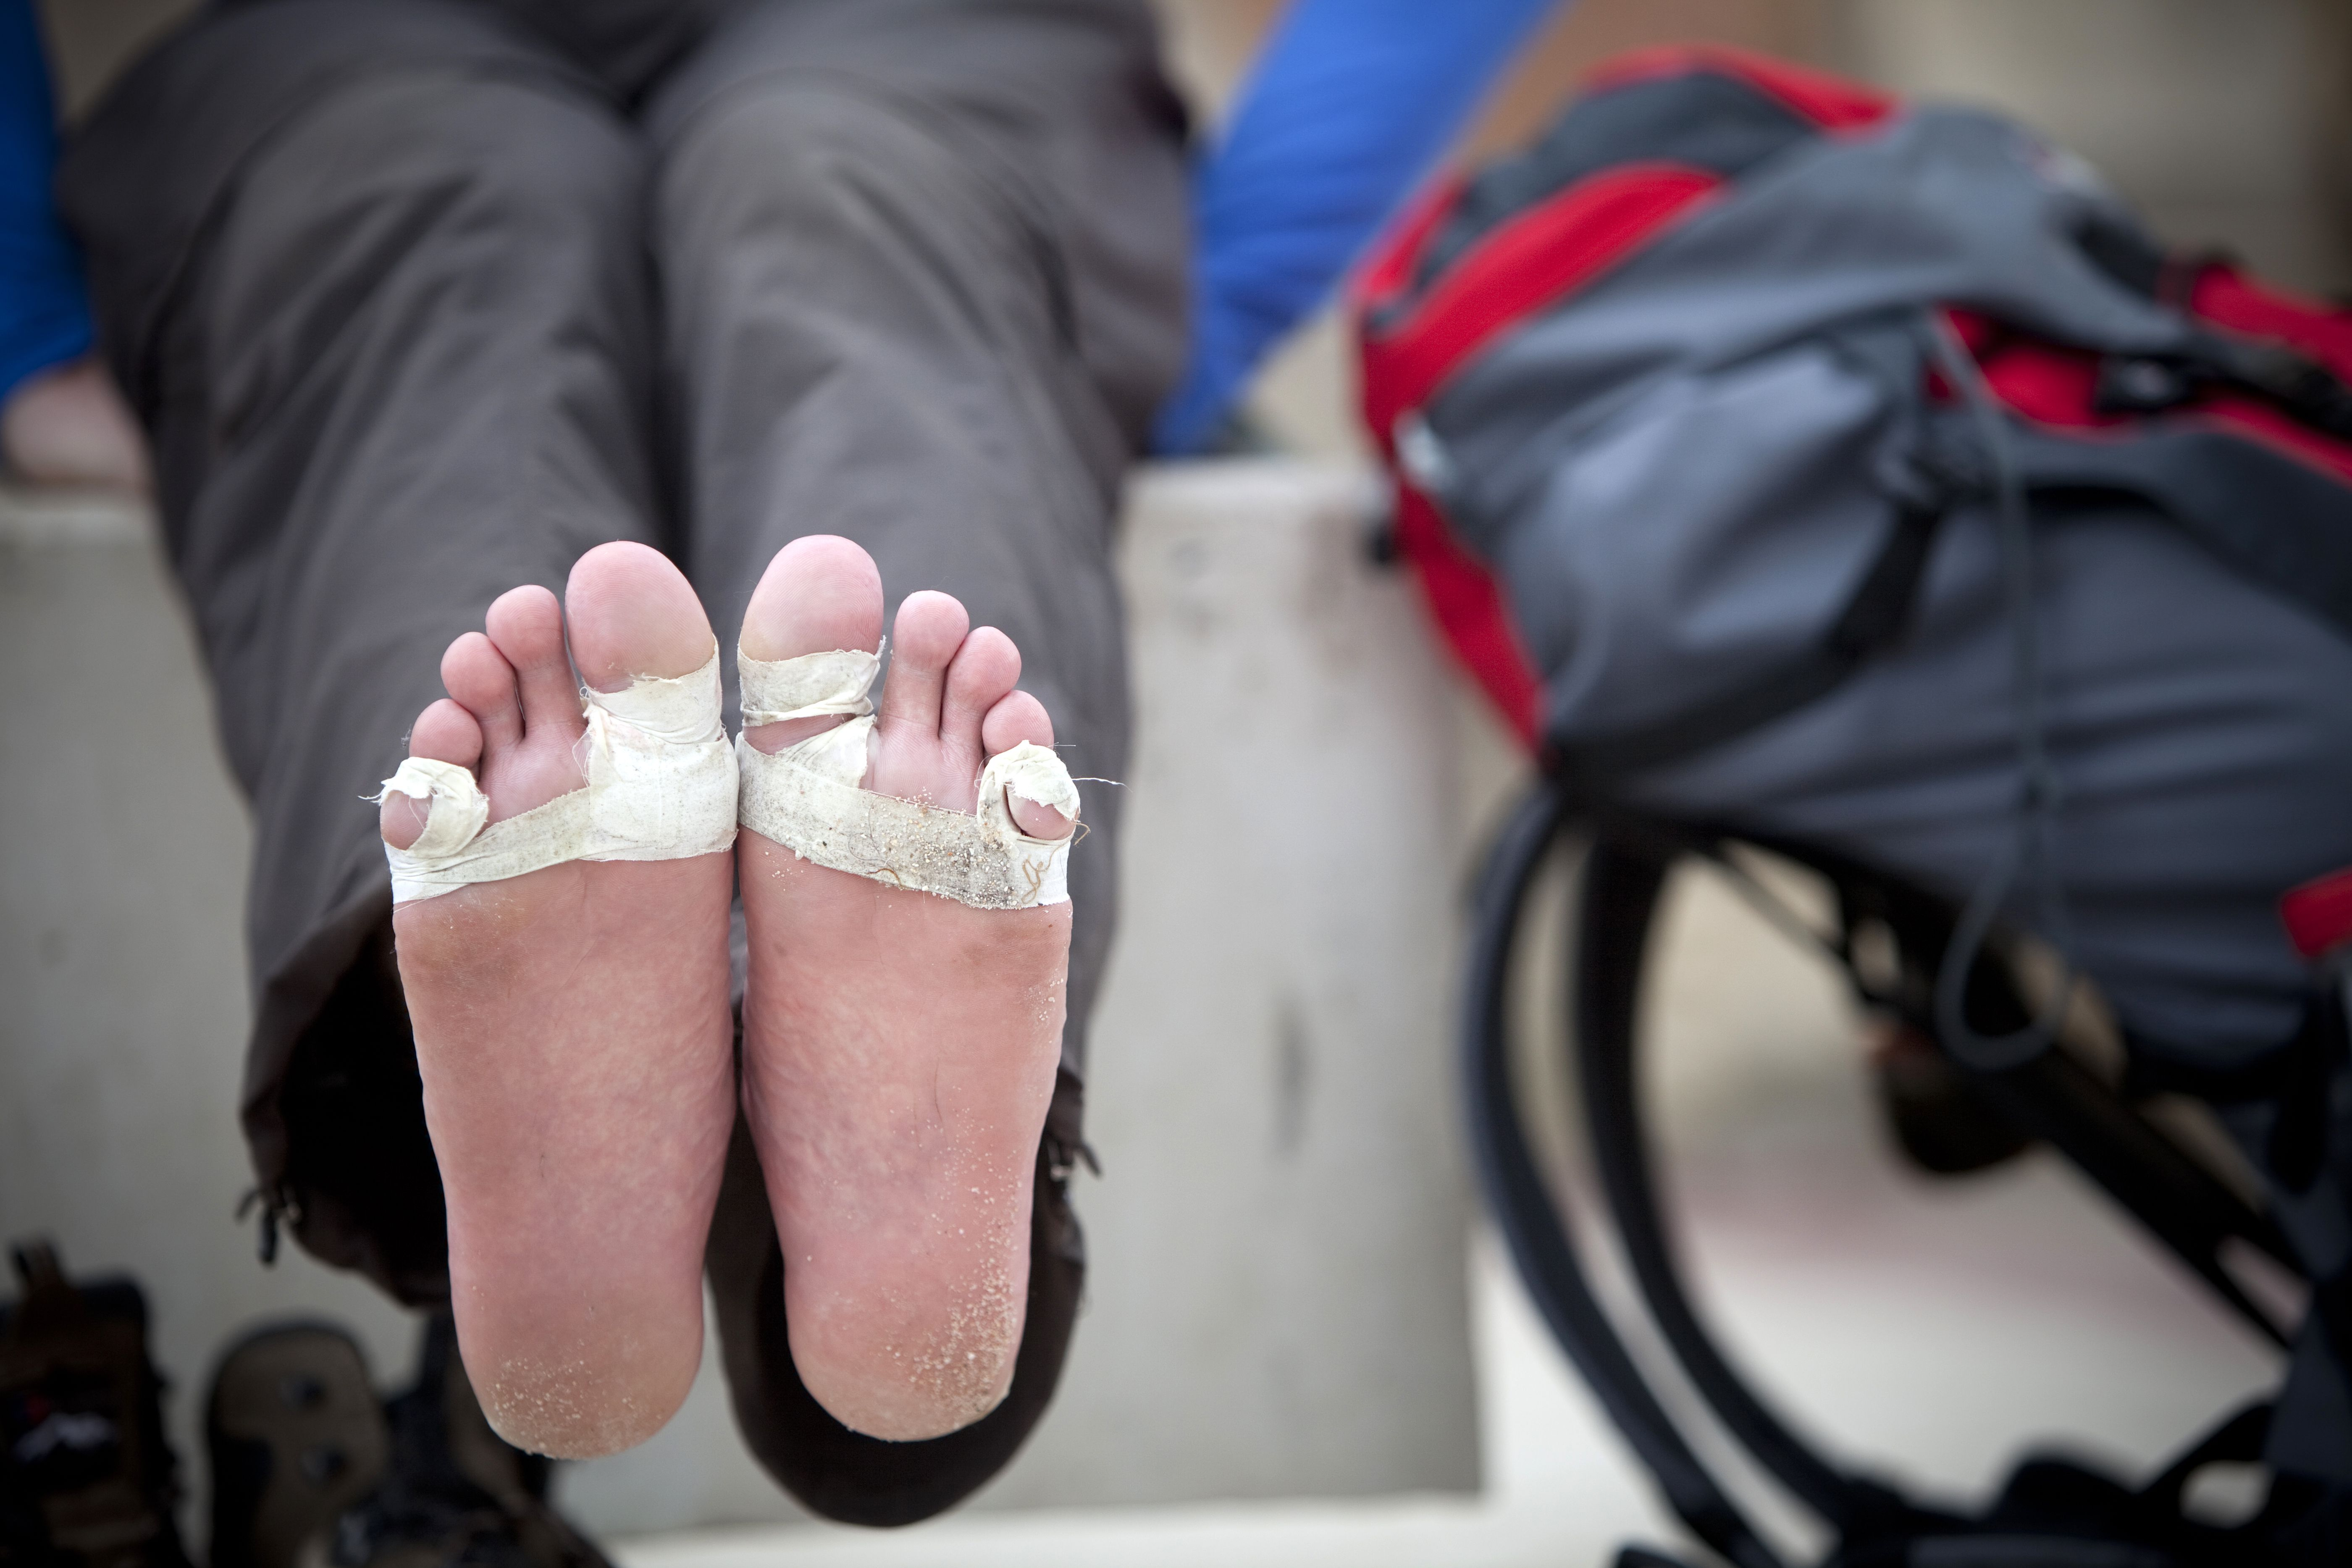 Taped blisters and hotspots on feet of pilgrims on the Camino de Santiago, Spain